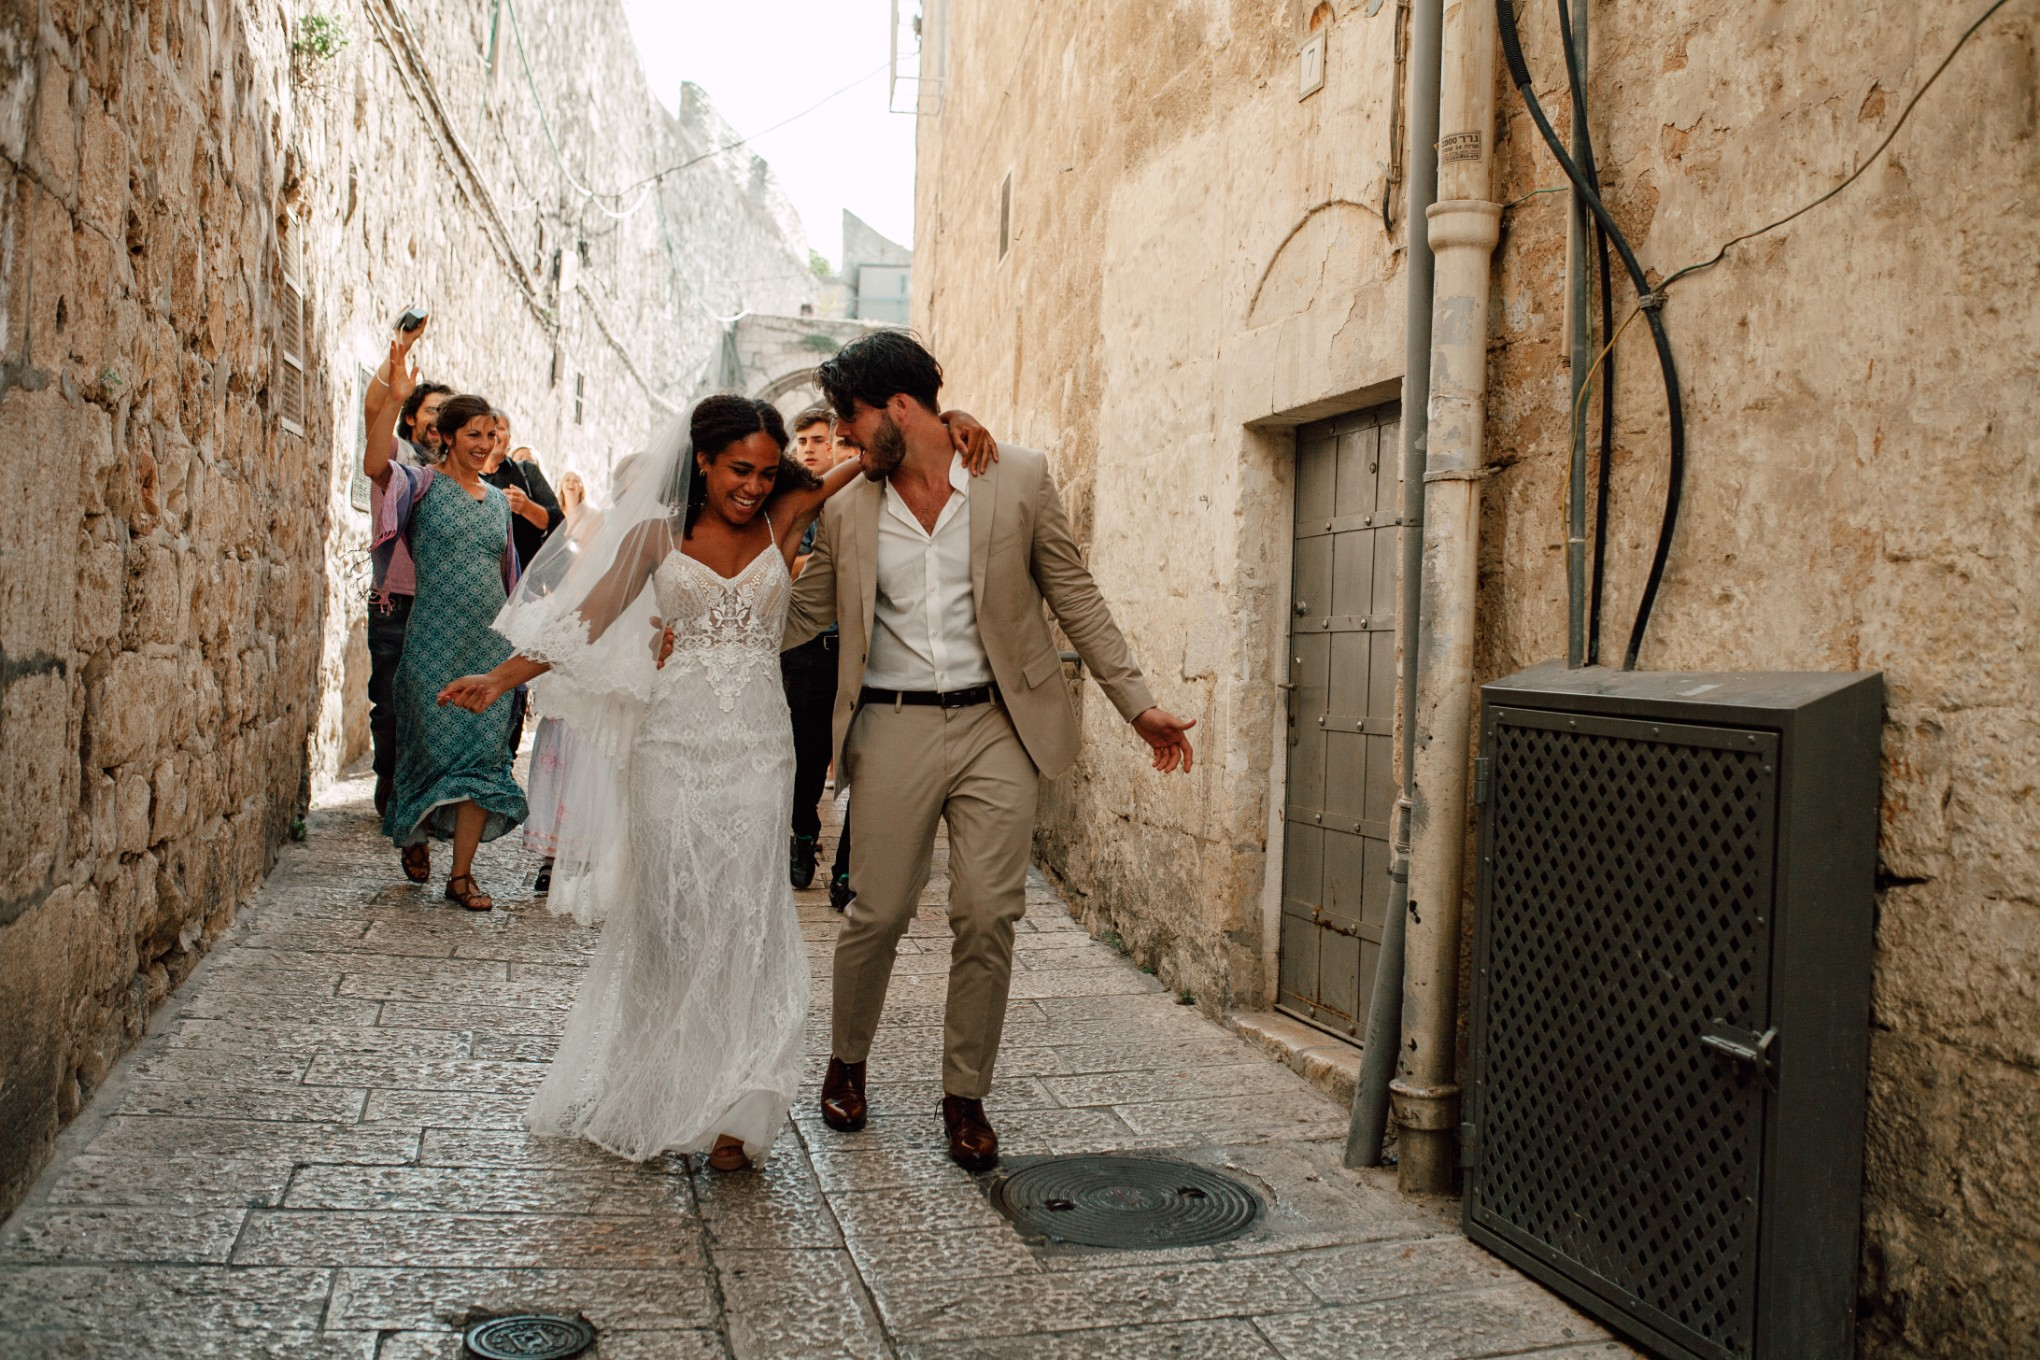 Jerusalem-Pia-Anna-Christian-Wedding-Photography-AD-F-216.jpg